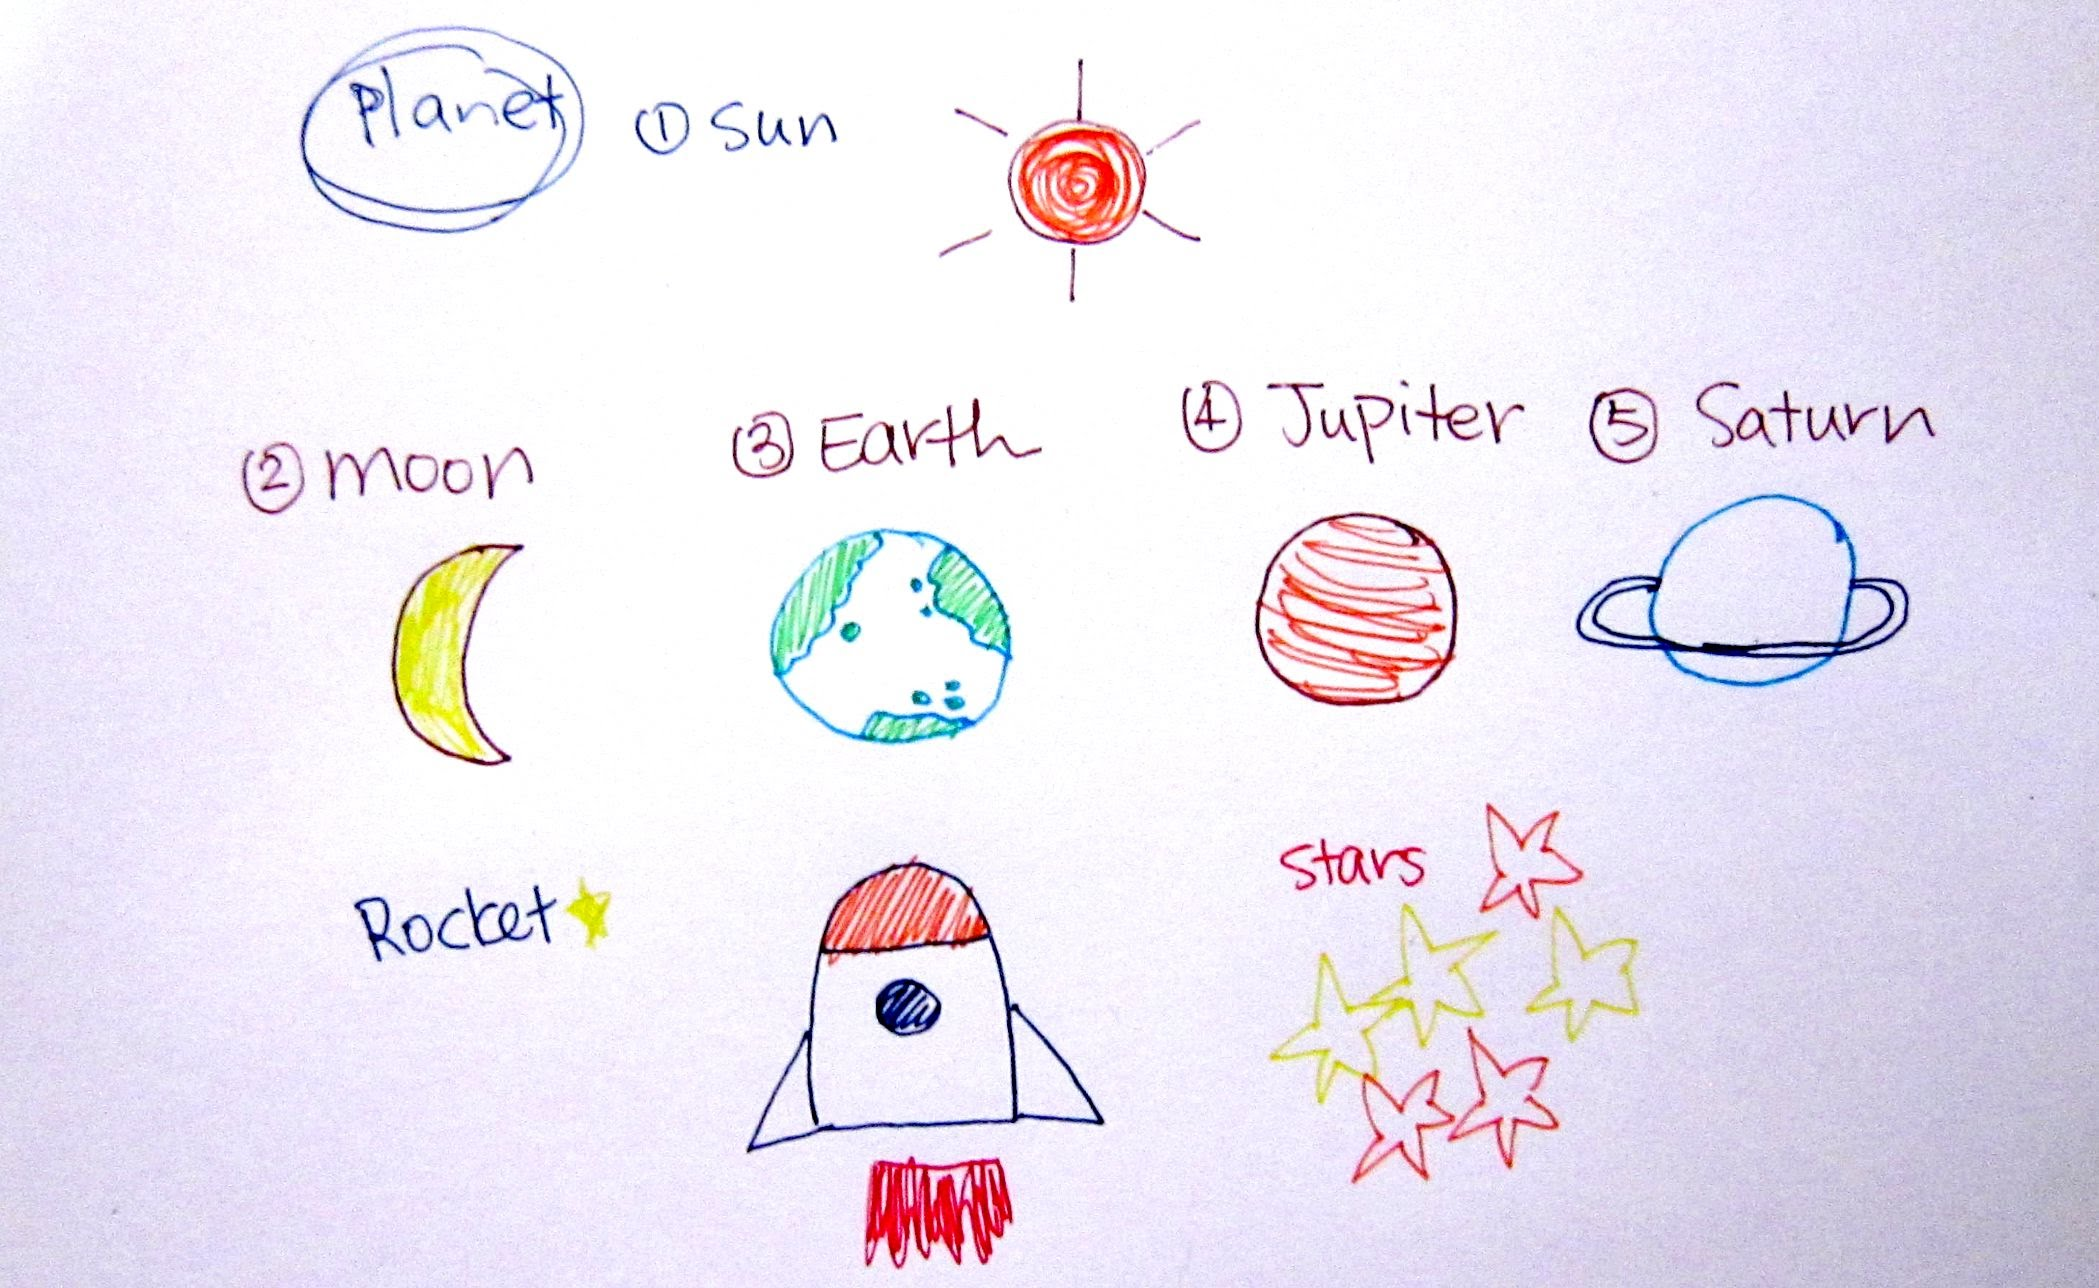 Drawn planets cute cartoon Planets Draw How YouTube Draw